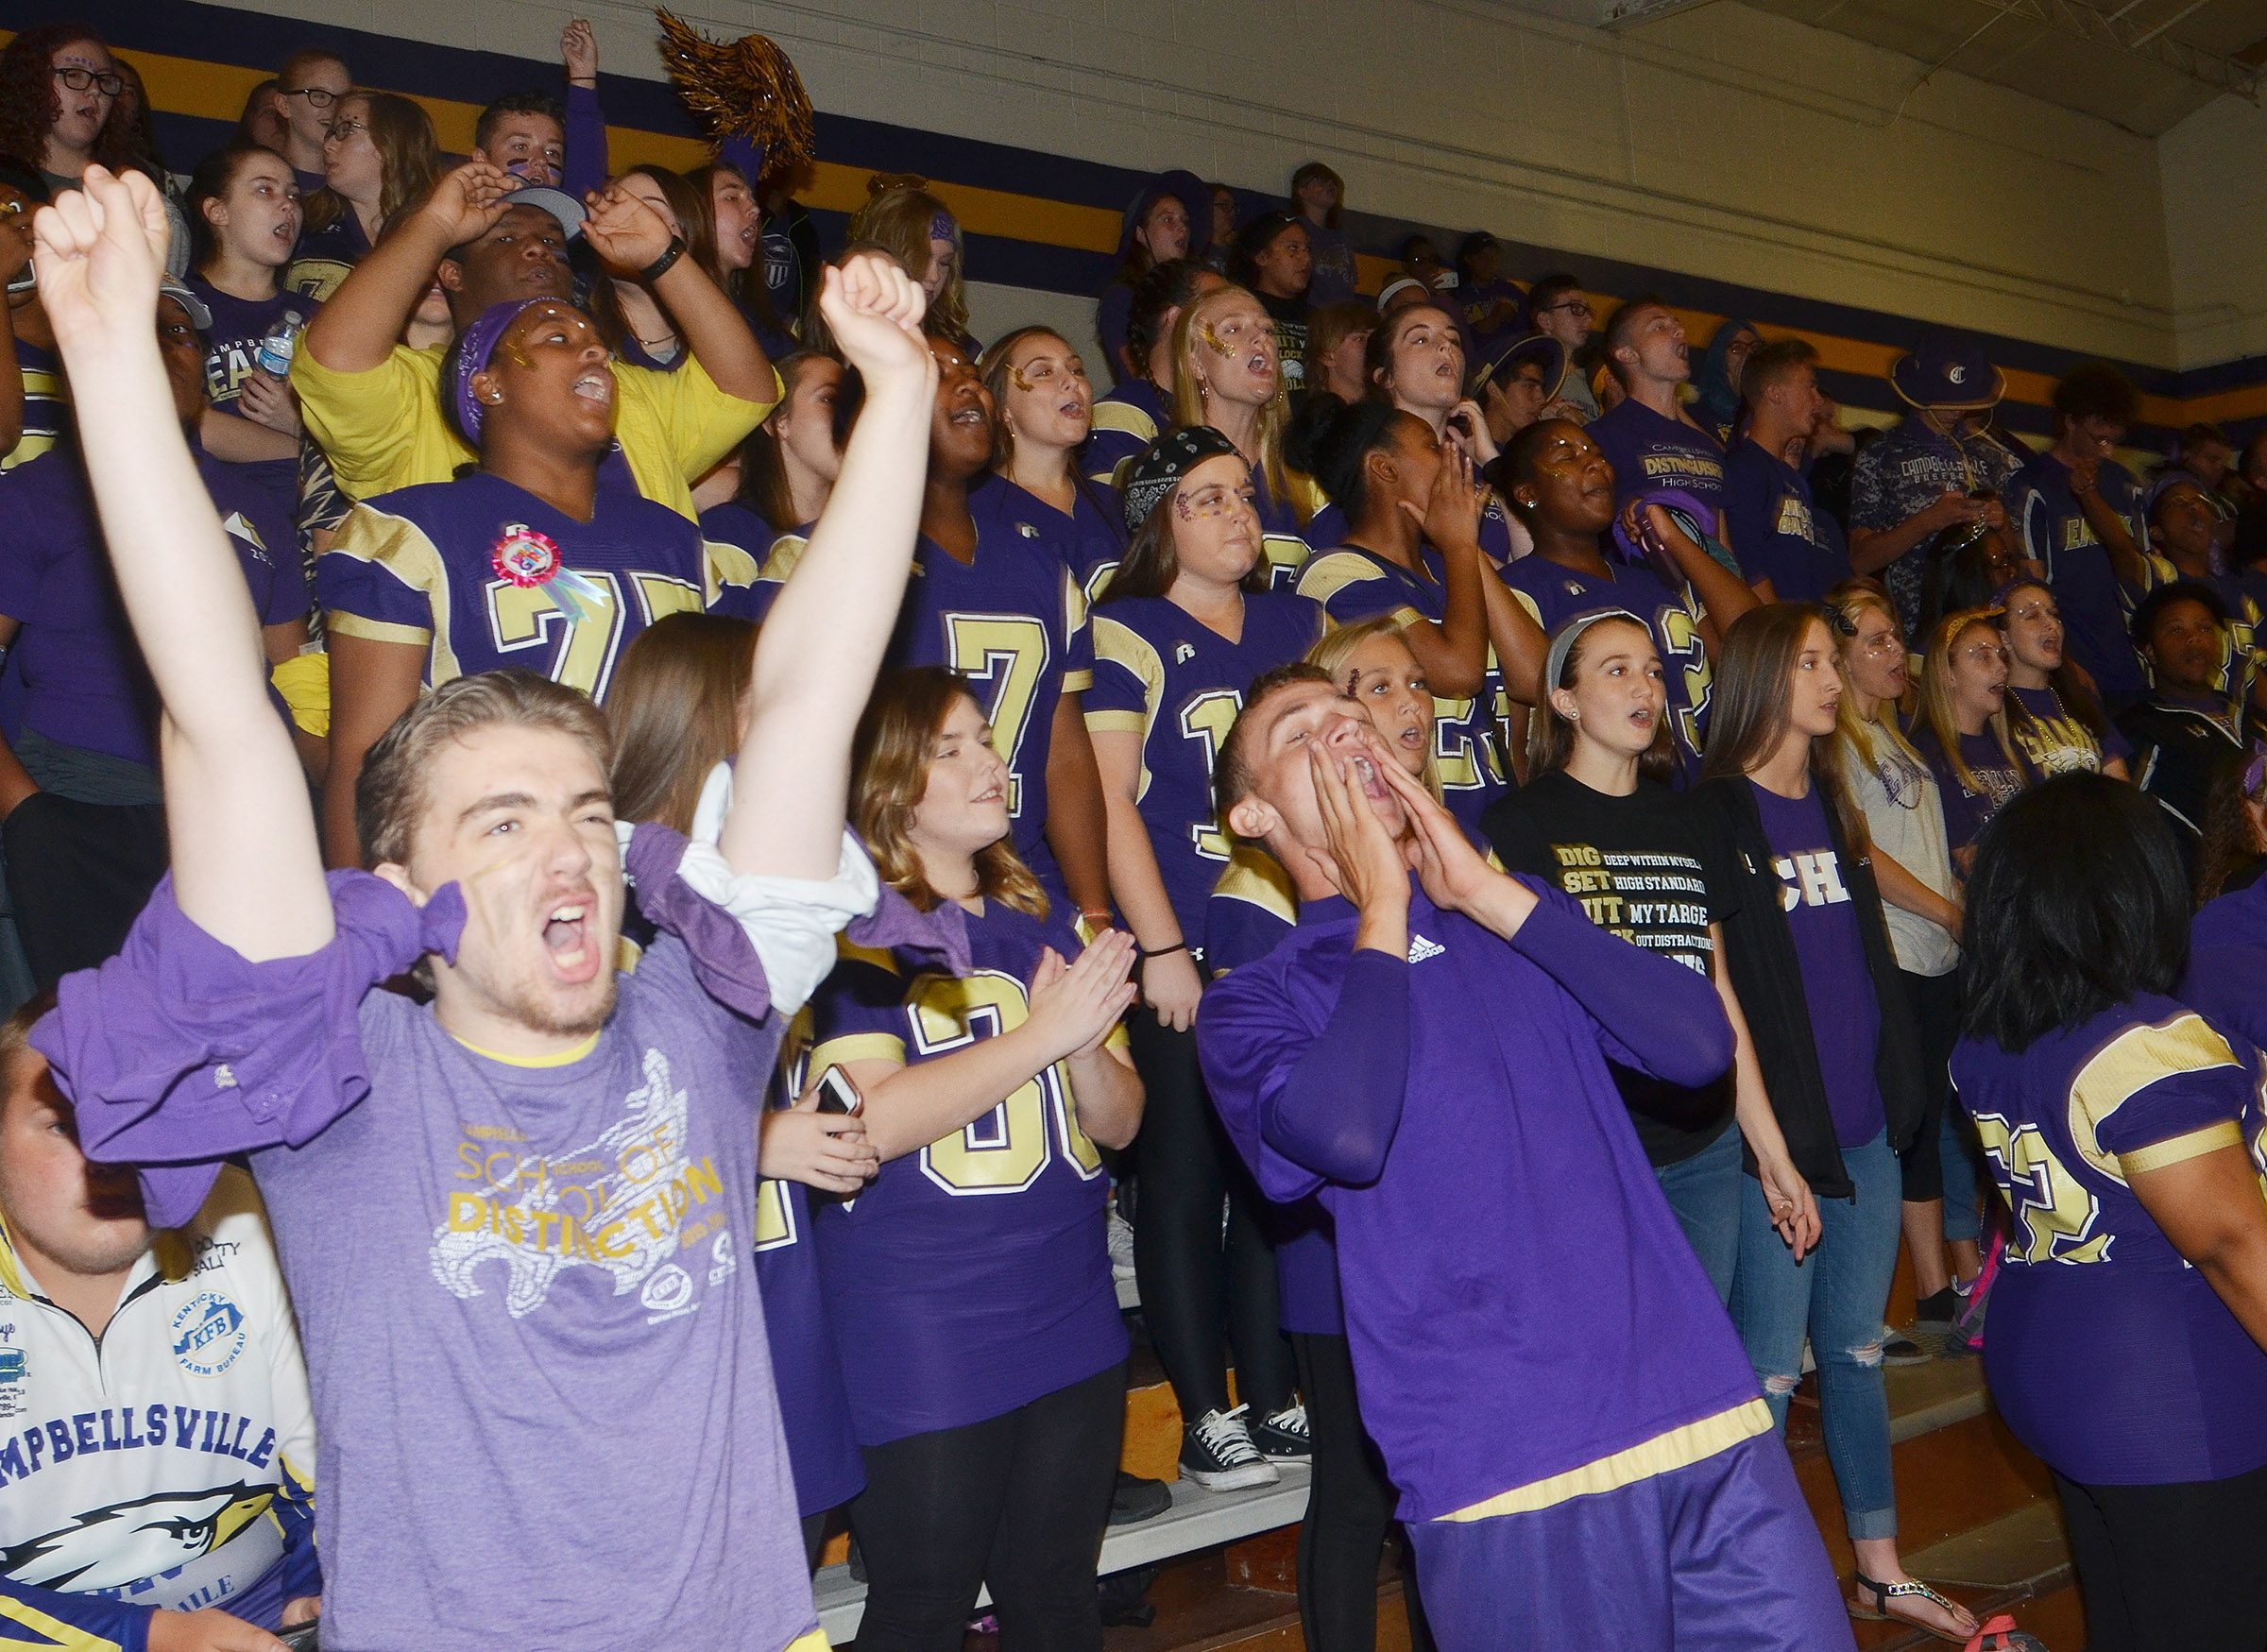 CHS CHS sophomore Anthony Shipione, at left, and his classmates cheer.cheer as they are announced as the winners of this year's spirit stick.